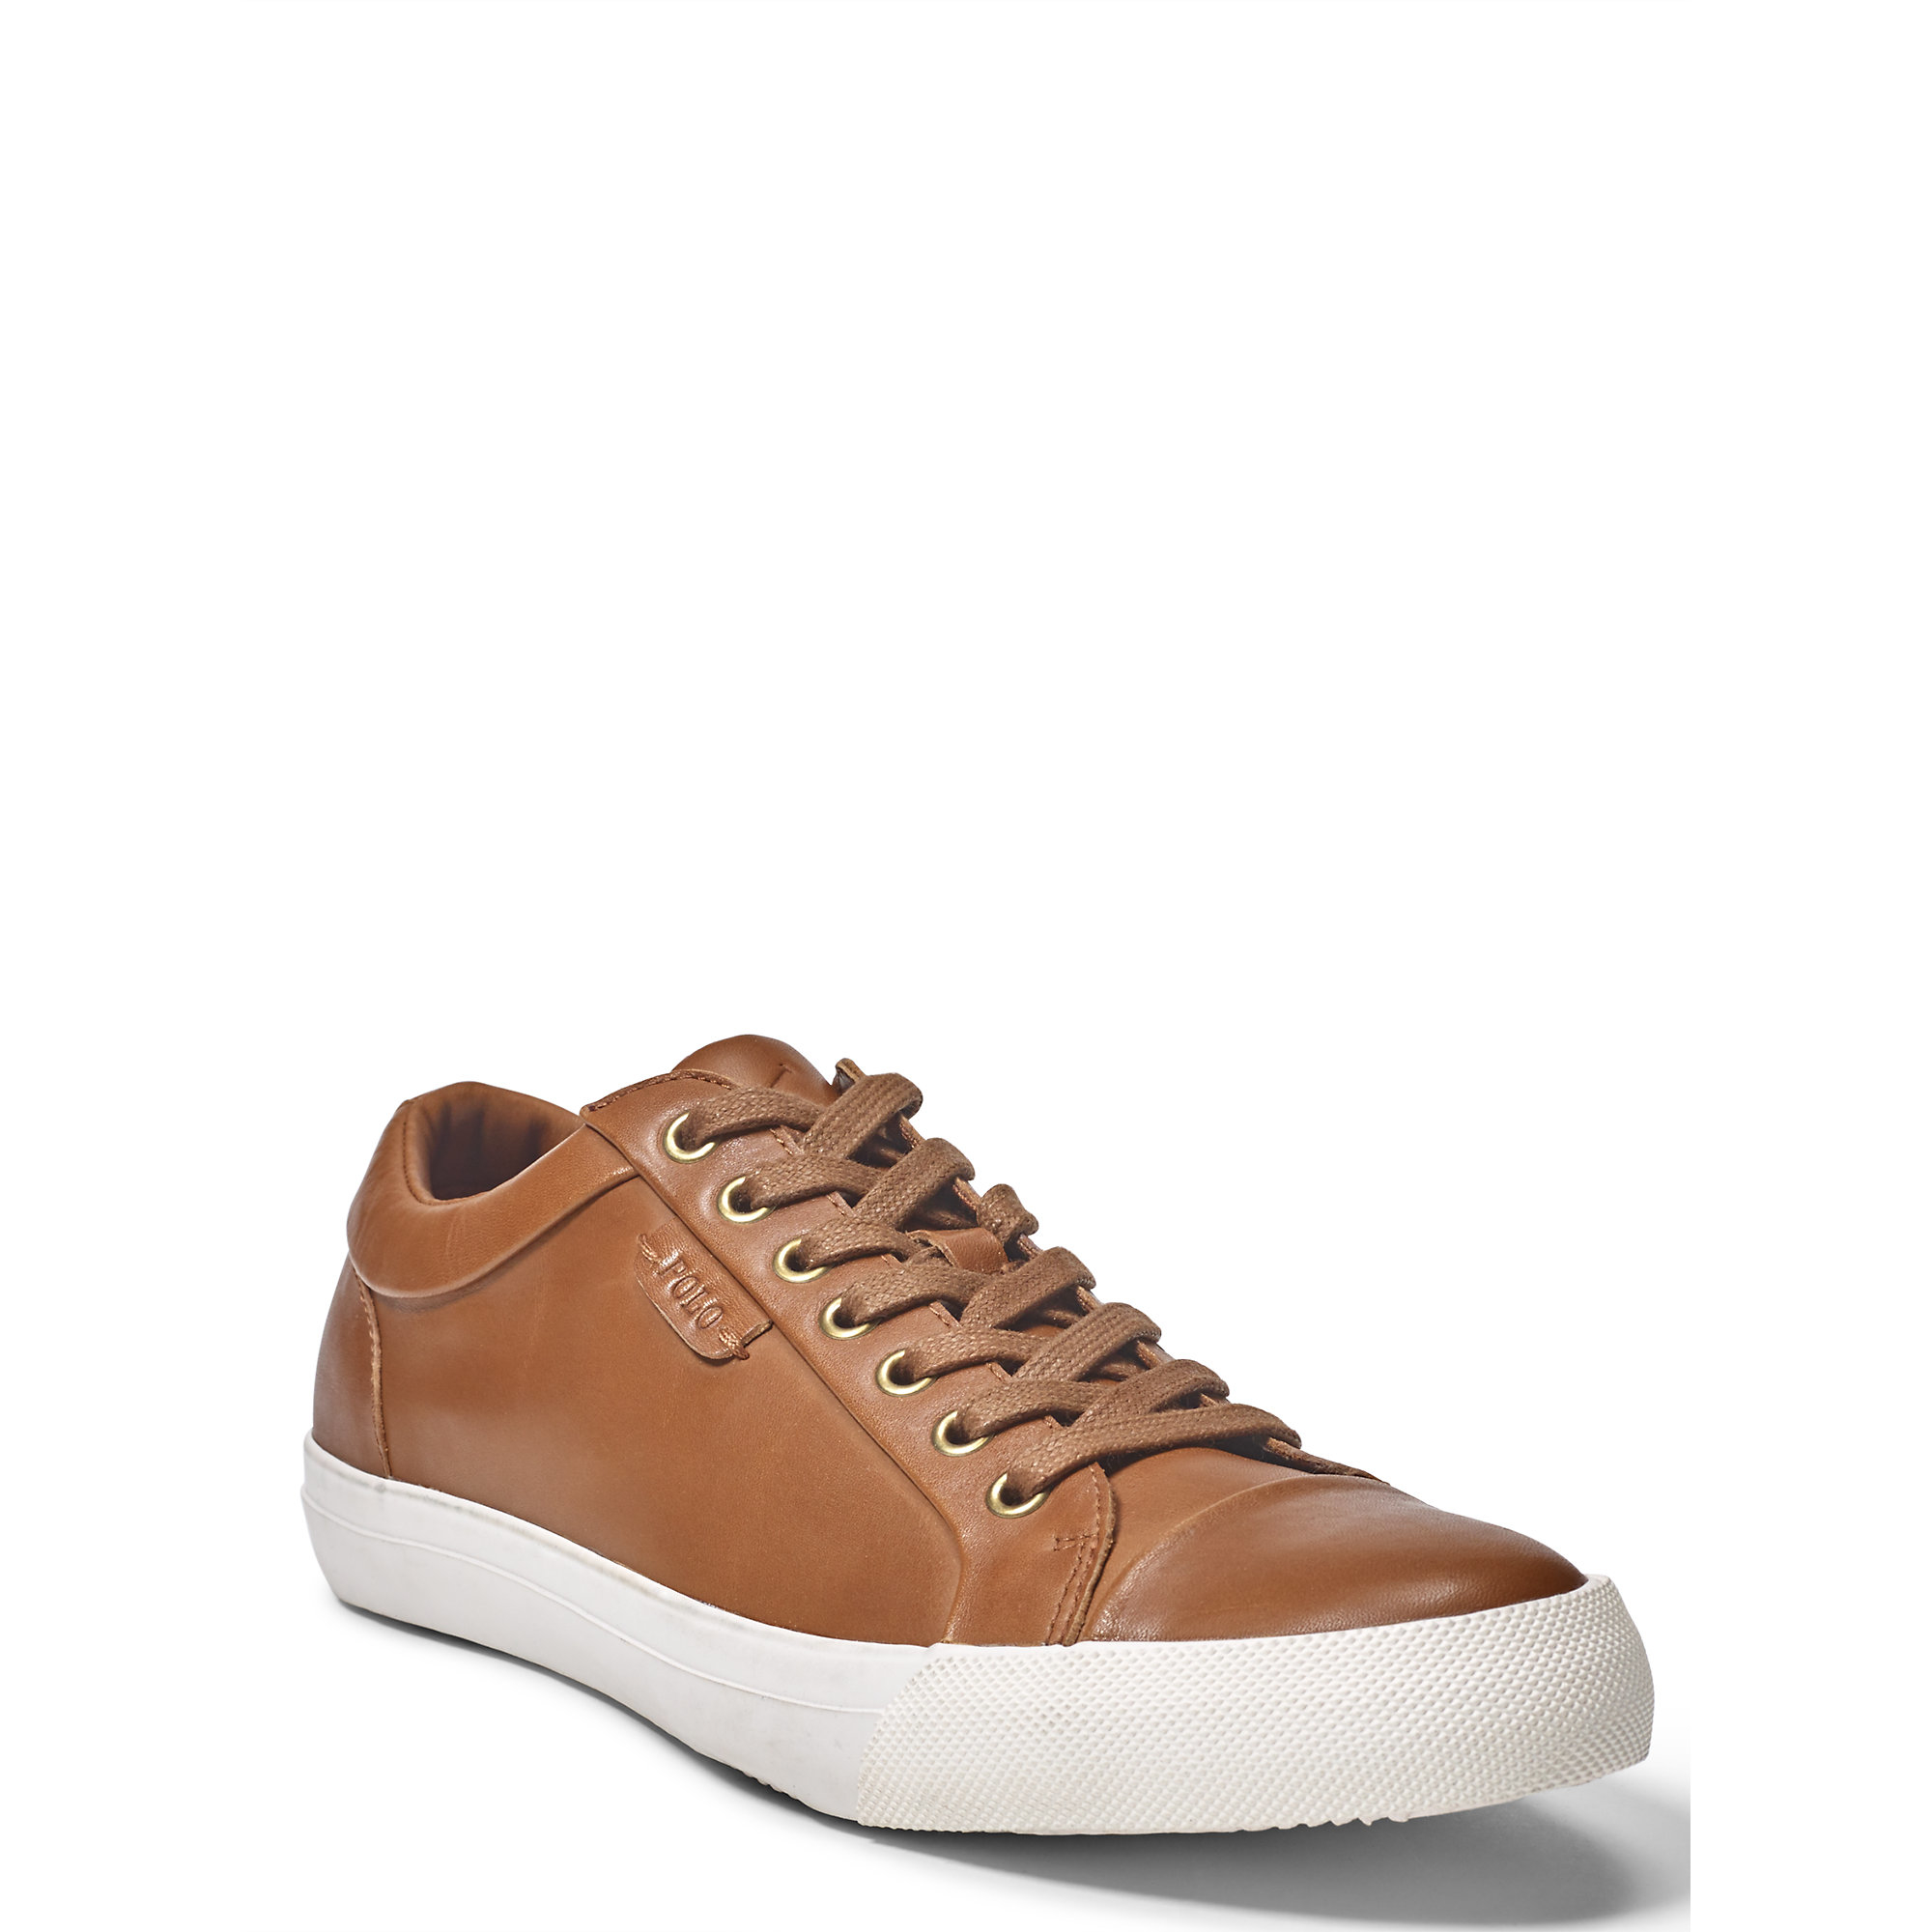 polo ralph lauren geffrey leather sneaker in brown for men lyst. Black Bedroom Furniture Sets. Home Design Ideas